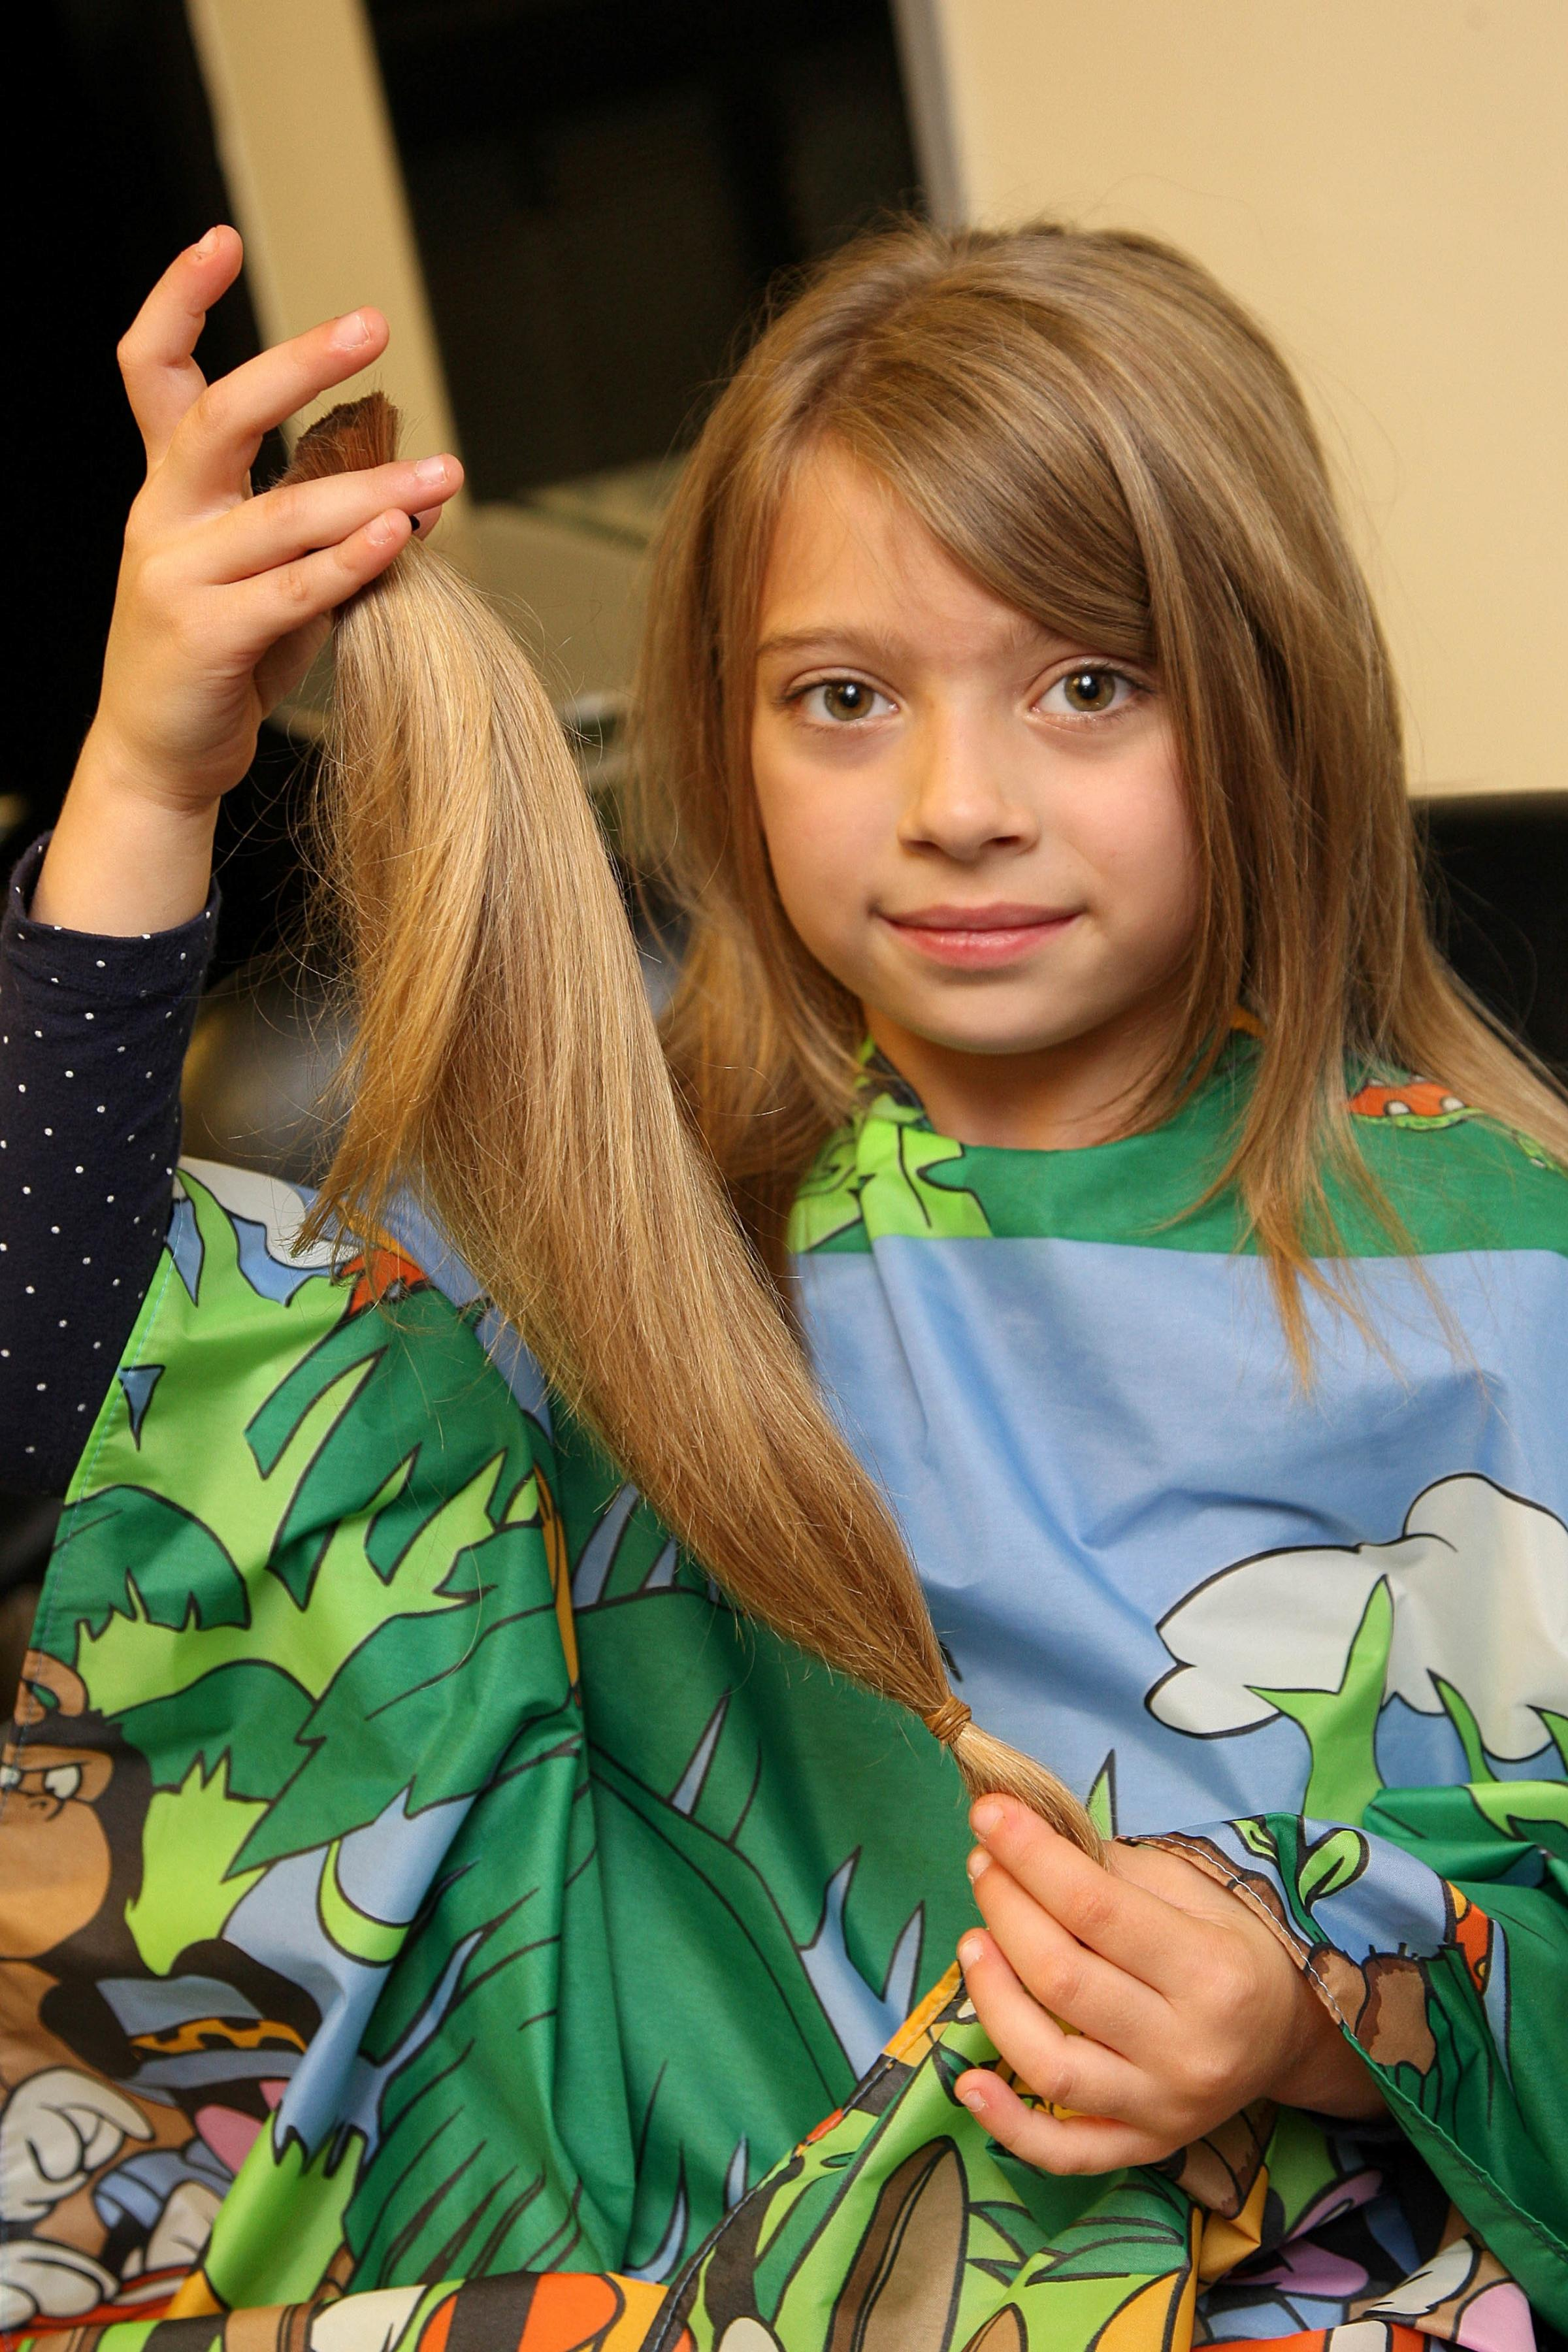 Seven-year-old girl cuts off her hair to make a wig for young